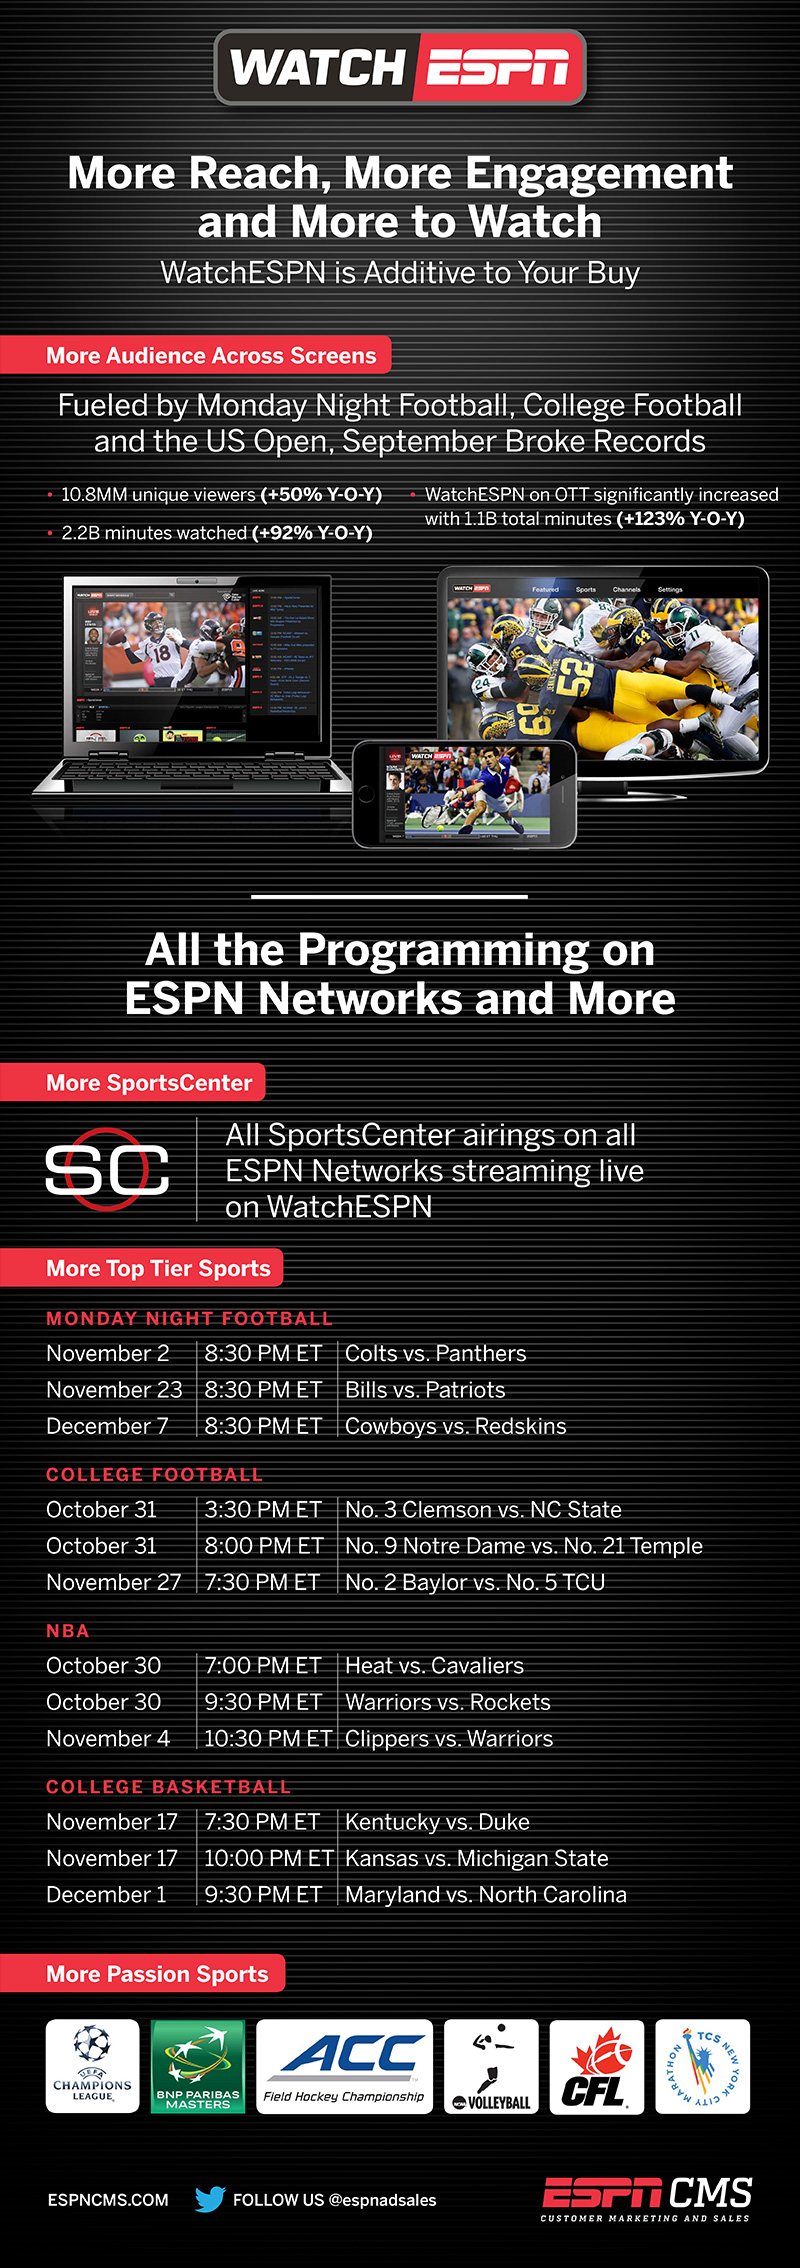 ESPNCMS Stream - WatchESPN | More Reach, More Engagement and More to Watch